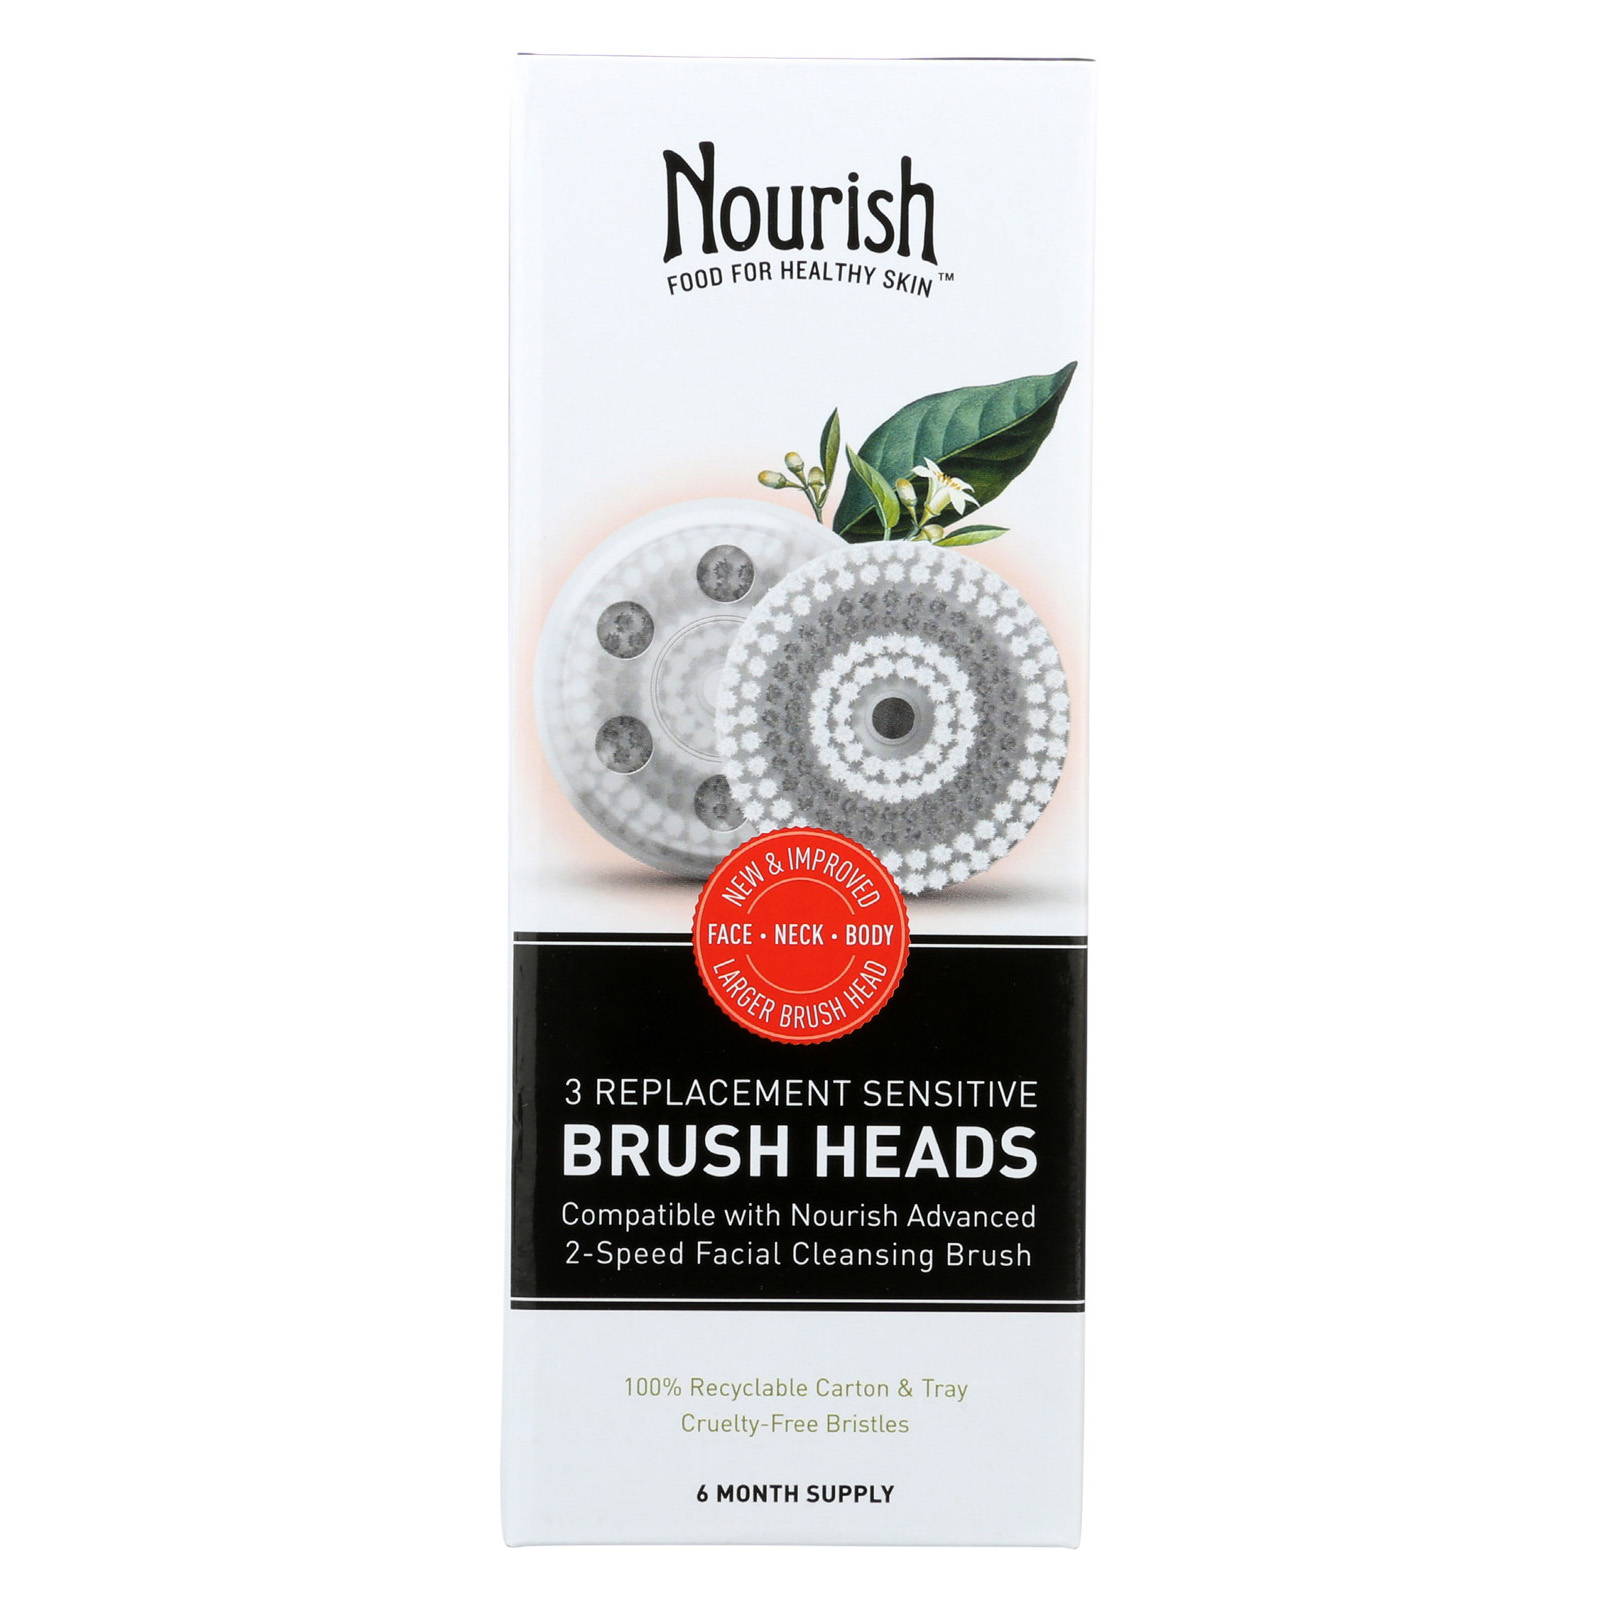 Nourish Replacement Brush Heads - 3 count